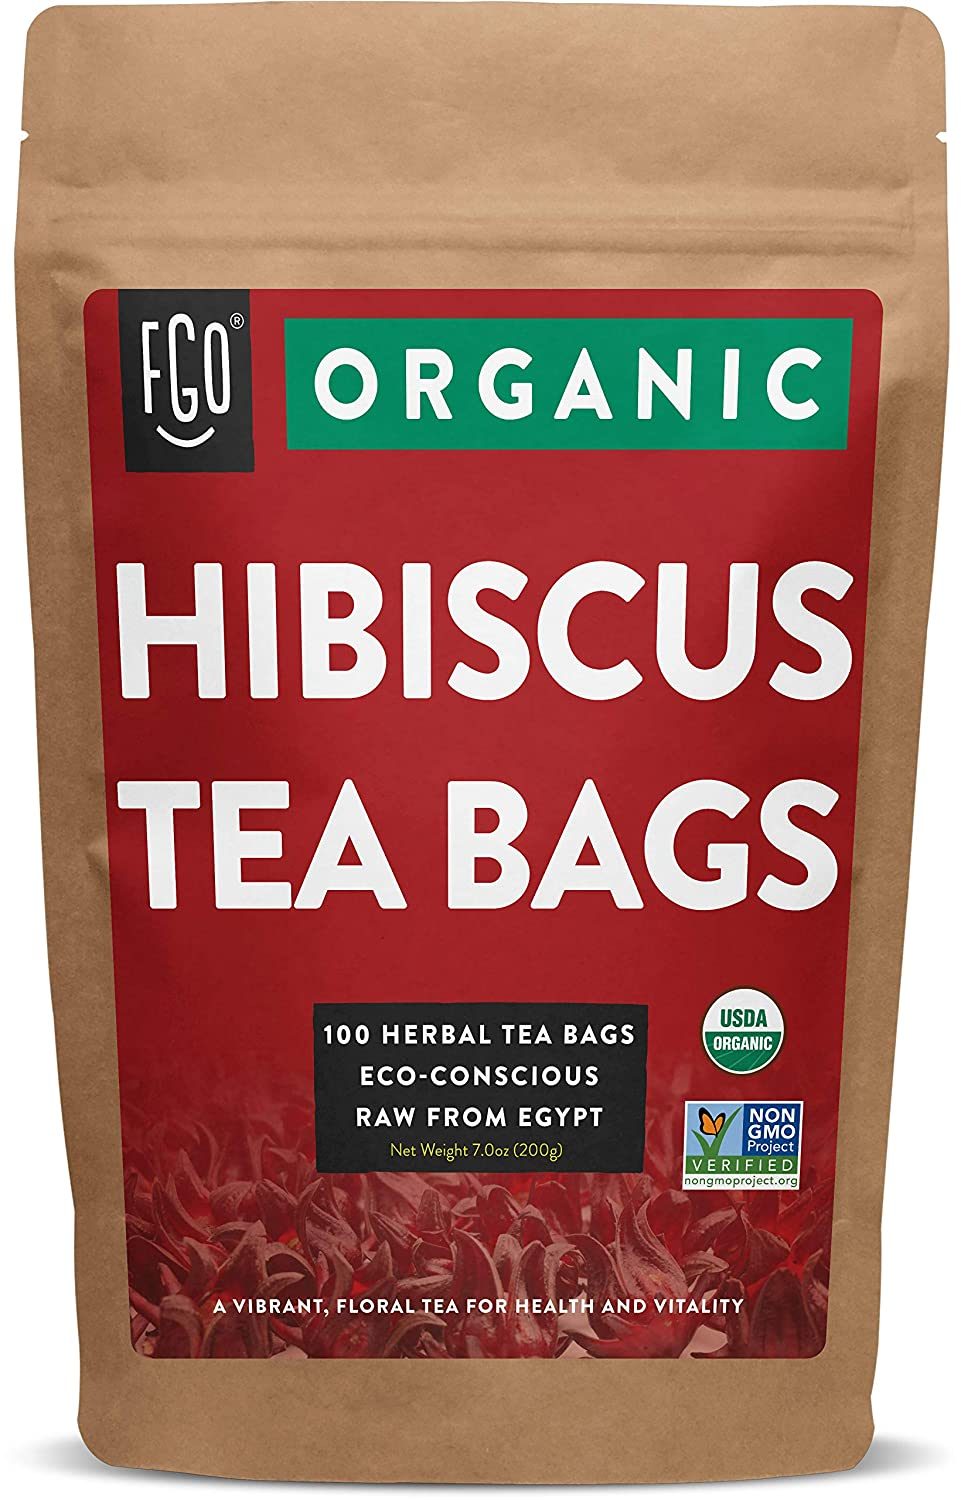 Organic Hibiscus Tea Bags | 100 Tea Bags | Eco-Conscious Tea Bags in Kraft Bag | Raw from Egypt | by FGO